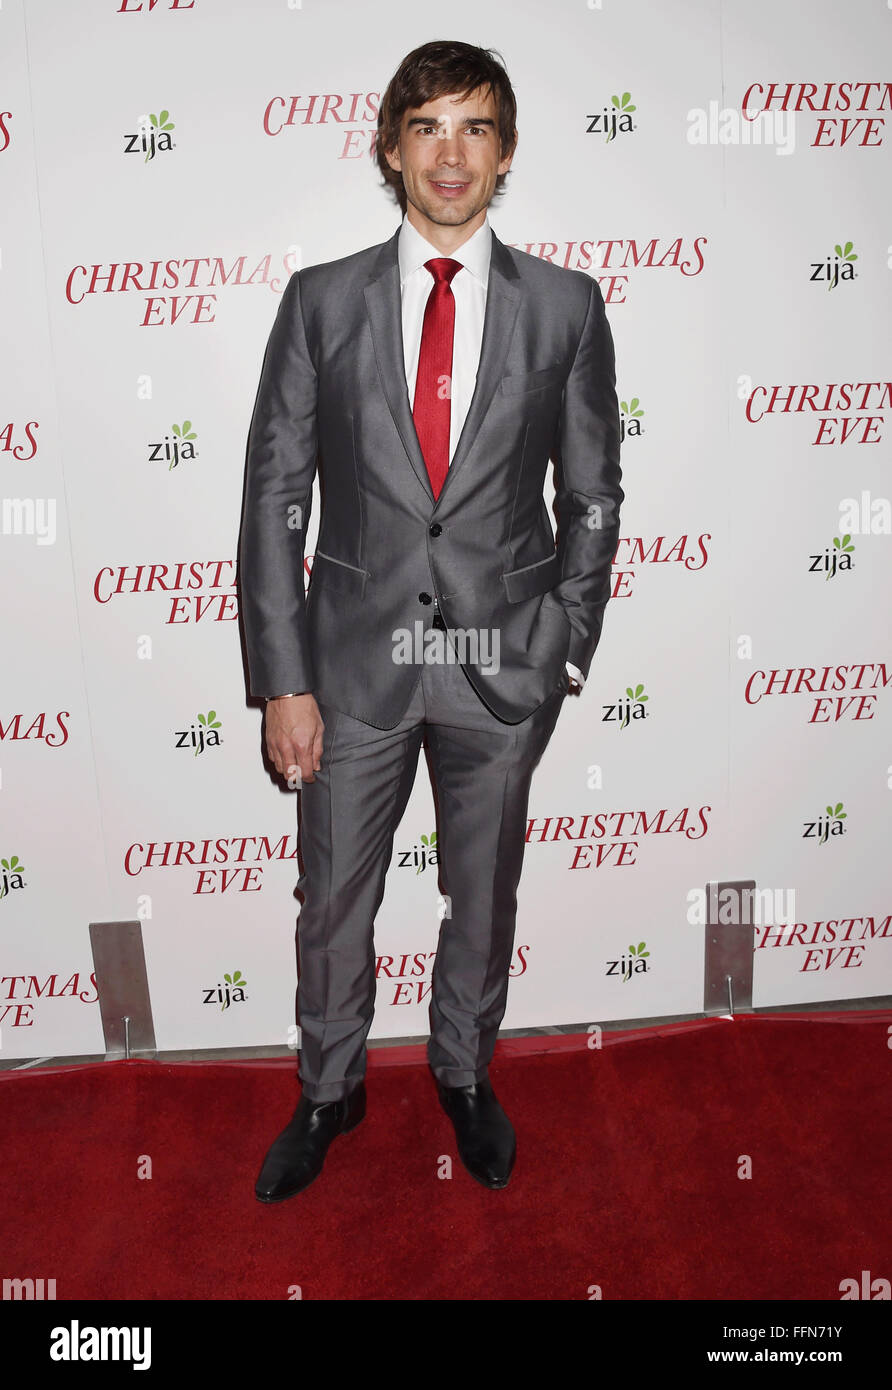 """Actor Christopher Gorham arrives at the premiere of Unstuck's """"Christmas Eve"""" at the ArcLight Hollywood on December Stock Photo"""